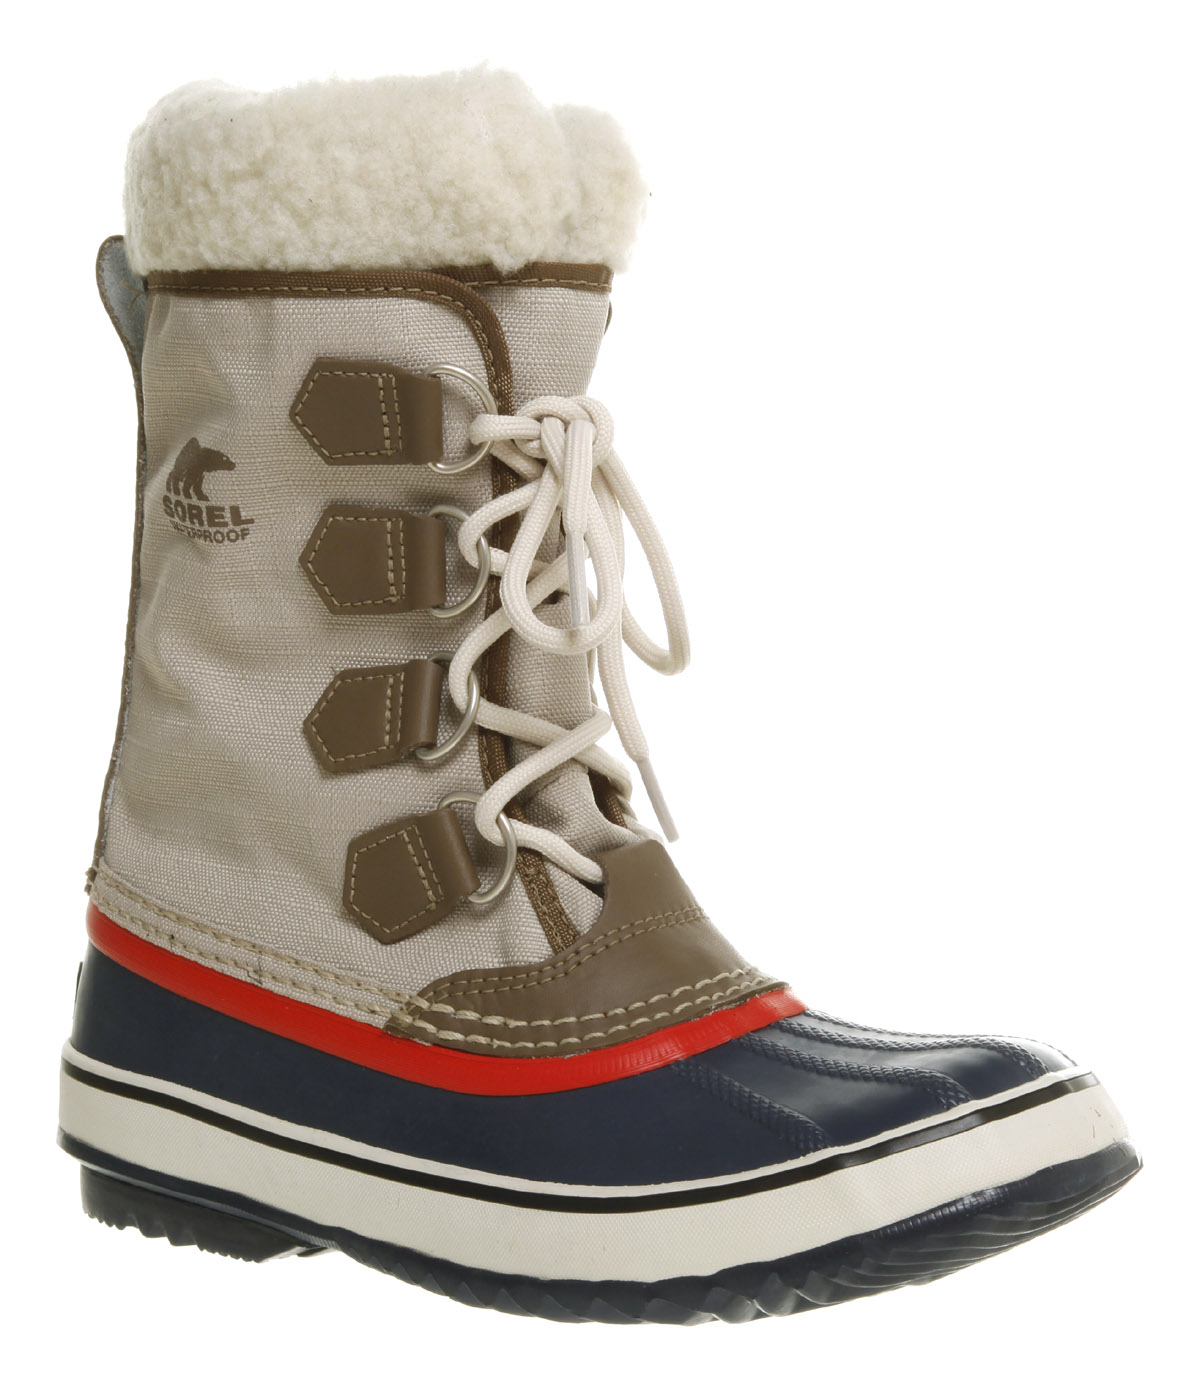 Womens Waterproof Snow Boots Clearance m7nQeUcz